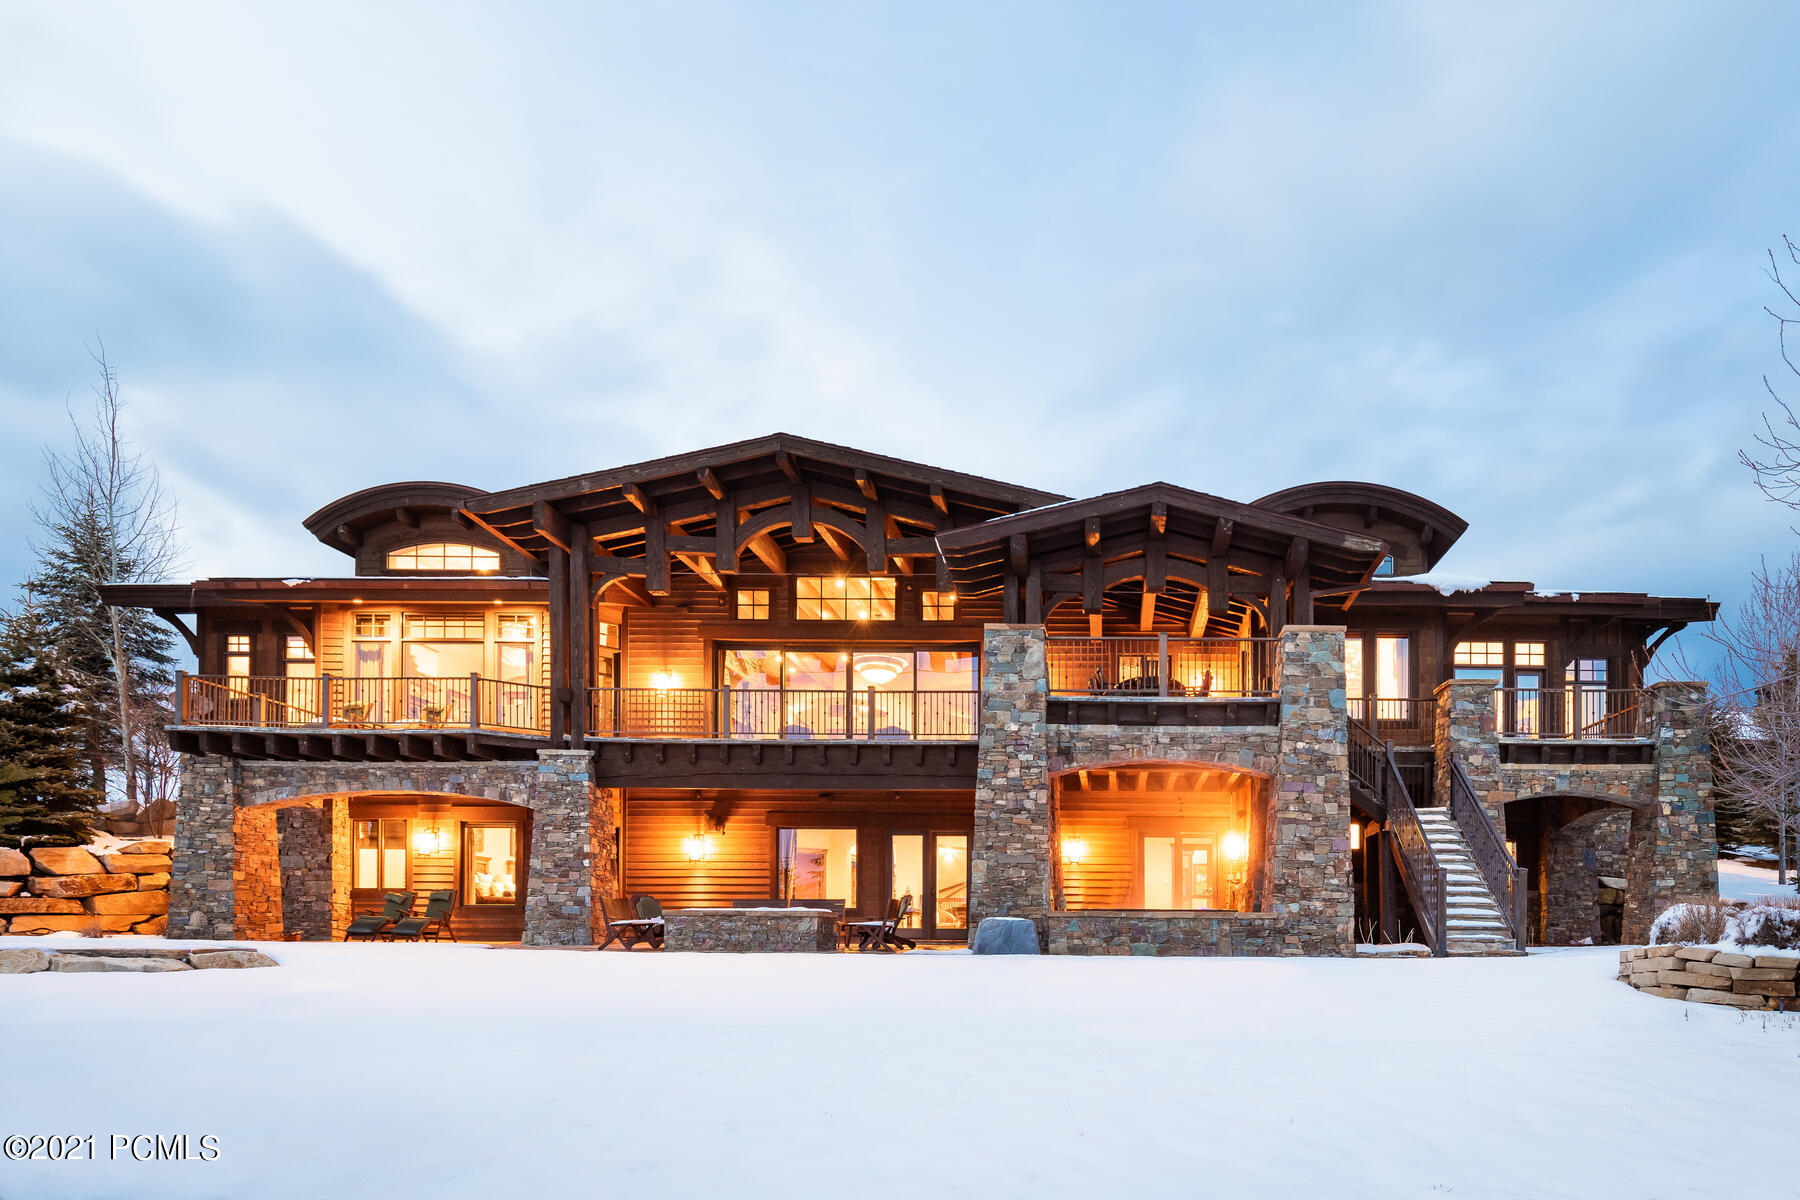 This sophisticated mountain residence embodies refined rustic elegance with panoramic ski run and mountain views. Thoughtfully designed by renowned architect Michael Upwall, the residence features his signature touch with a flowing, functional layout ideal for multi-generational enjoyment. The customization implemented by acclaimed designer Paula Berg is unmatched, tastefully coordinated with custom finishes, and meticulous attention to detail. From the reclaimed Wisconsin schoolhouse floors to thoughtfully designed furniture perfectly created to nest along luxurious curved walls, this property will impress the most discerning of Buyers. The sprawling main level includes a luxurious master suite, two additional guest suites, and a handsomely crafted private office. The main level living area showcases impressive interior design elements, including an elevated circular dining area fit for royalty. The chef's kitchen includes a dramatic copper hood, hand-selected hardware, commercial-grade appliances, and an oversized island to accommodate preparation for large gatherings with family and friends. The intimate breakfast nook is the perfect place to share a meal by one of the 8 fireplaces throughout the home. Invite friends and family for extended stays where they can feel at home in one of the three lower-level guest suites. After a day of mountain adventures, your guest can enjoy their favorite flicks in the Sundance-inspired theatre room, relax at the bar or enjoy a steam in the private home gym. This centrally located home includes a coveted full golf membership and is within walking distance to The Ranch and Dye Clubhouse's allowing the homeowner to enjoy Promontory's many amenities with ease. Welcome home to Painted Sky!